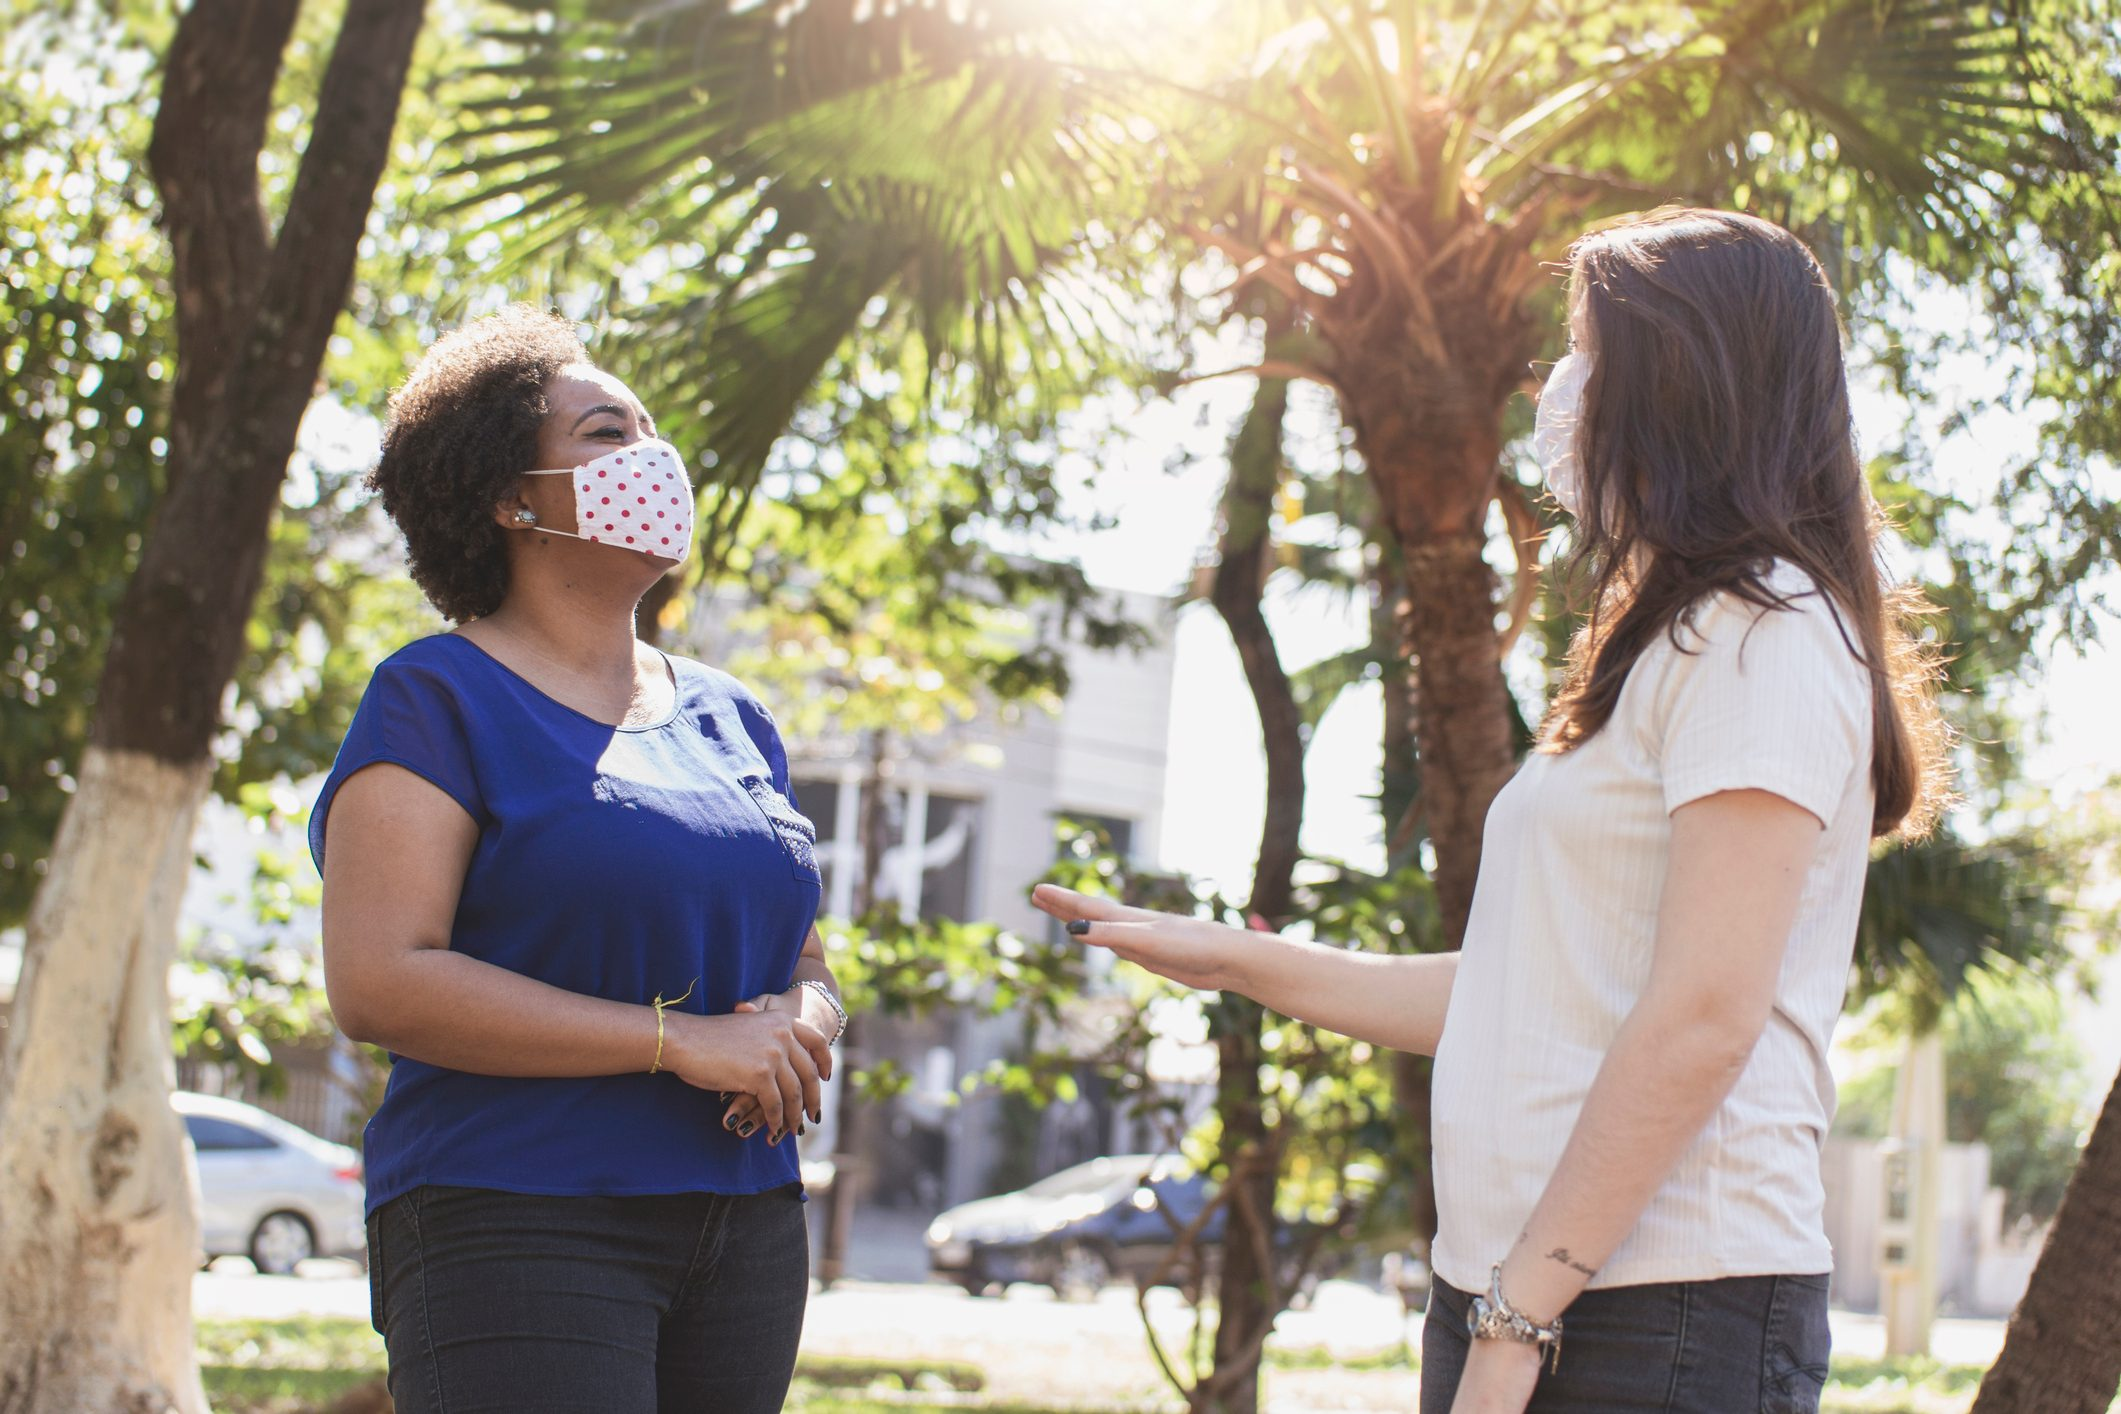 two women wearing face masks having a conversation outside